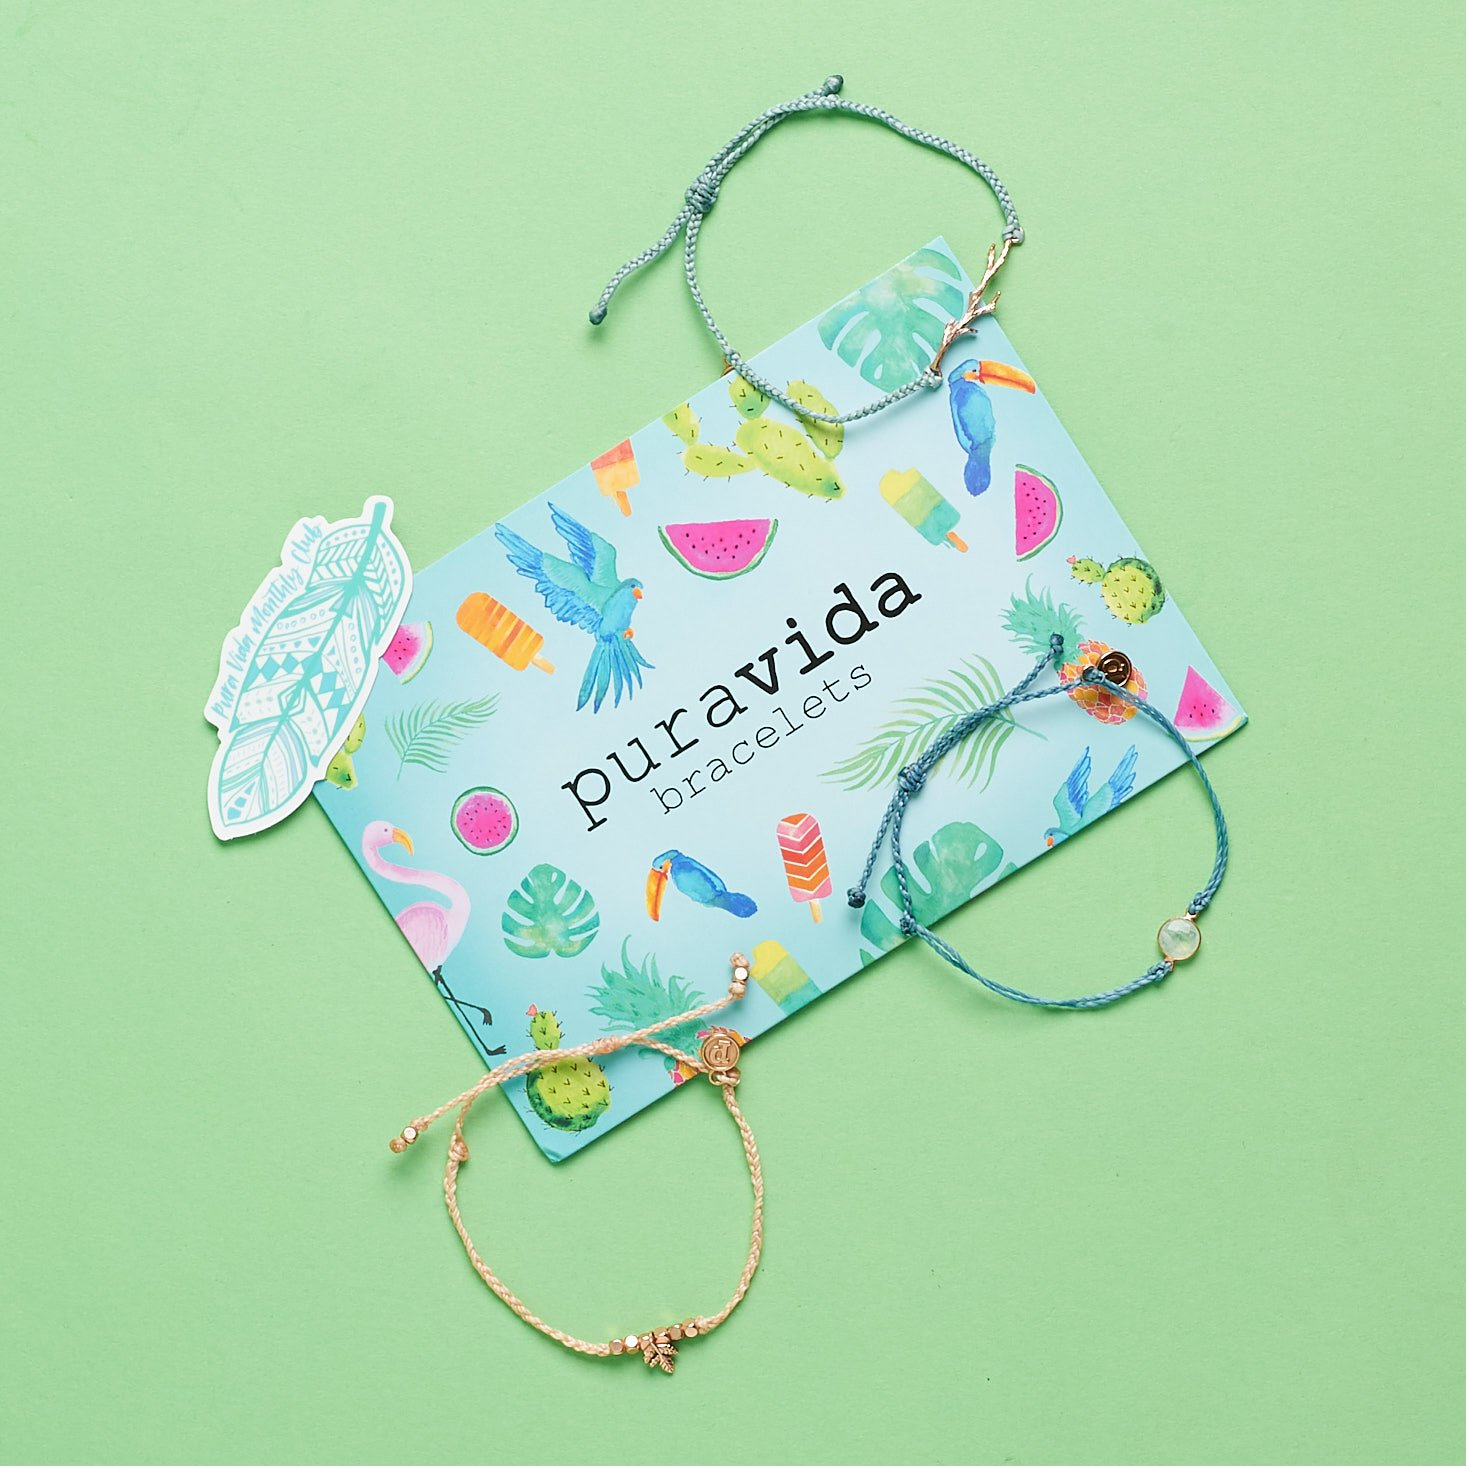 Best Jewelry Subscription Boxes Of 2019 Msa